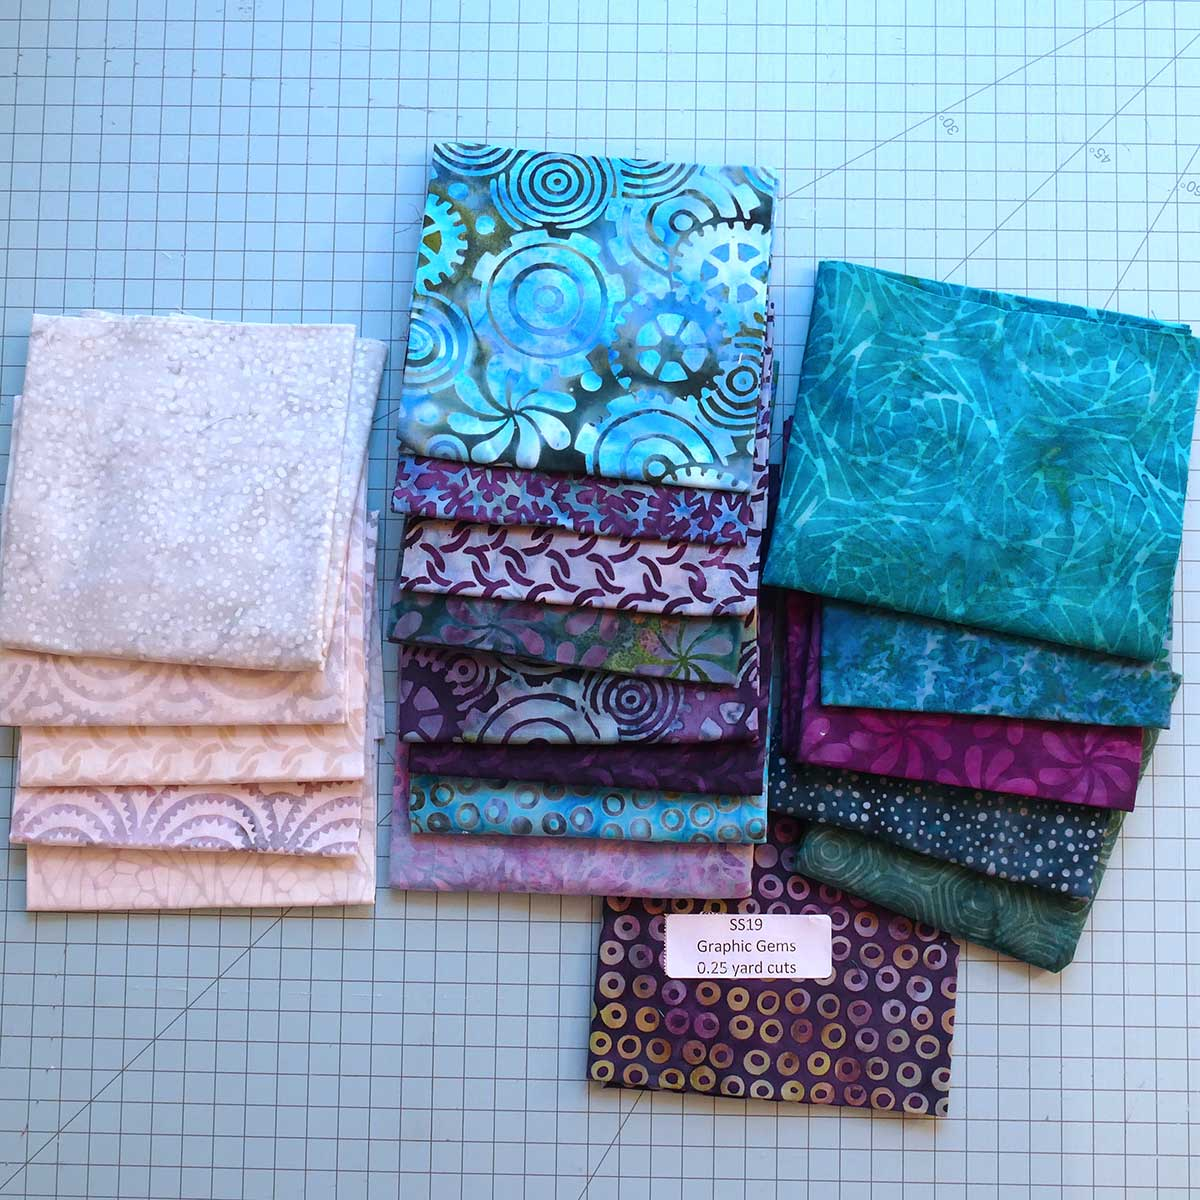 Island Batik fabric collection for the quilt blocks